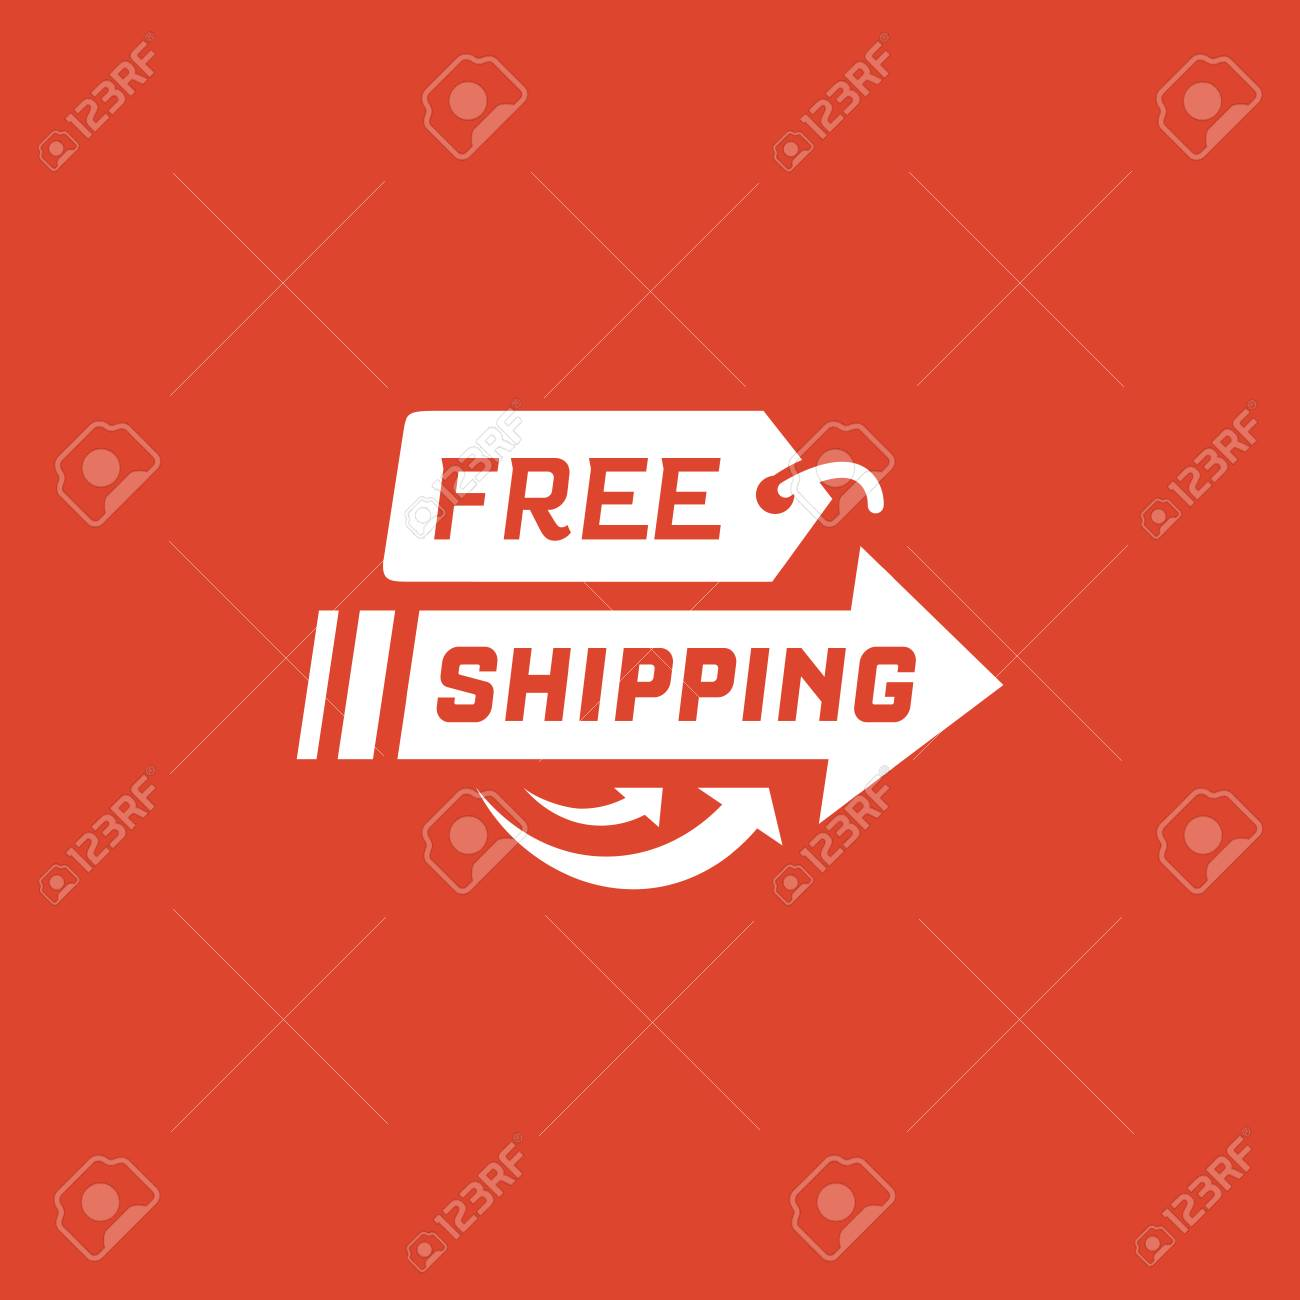 Free shipping on red background  Delivery label for online shopping